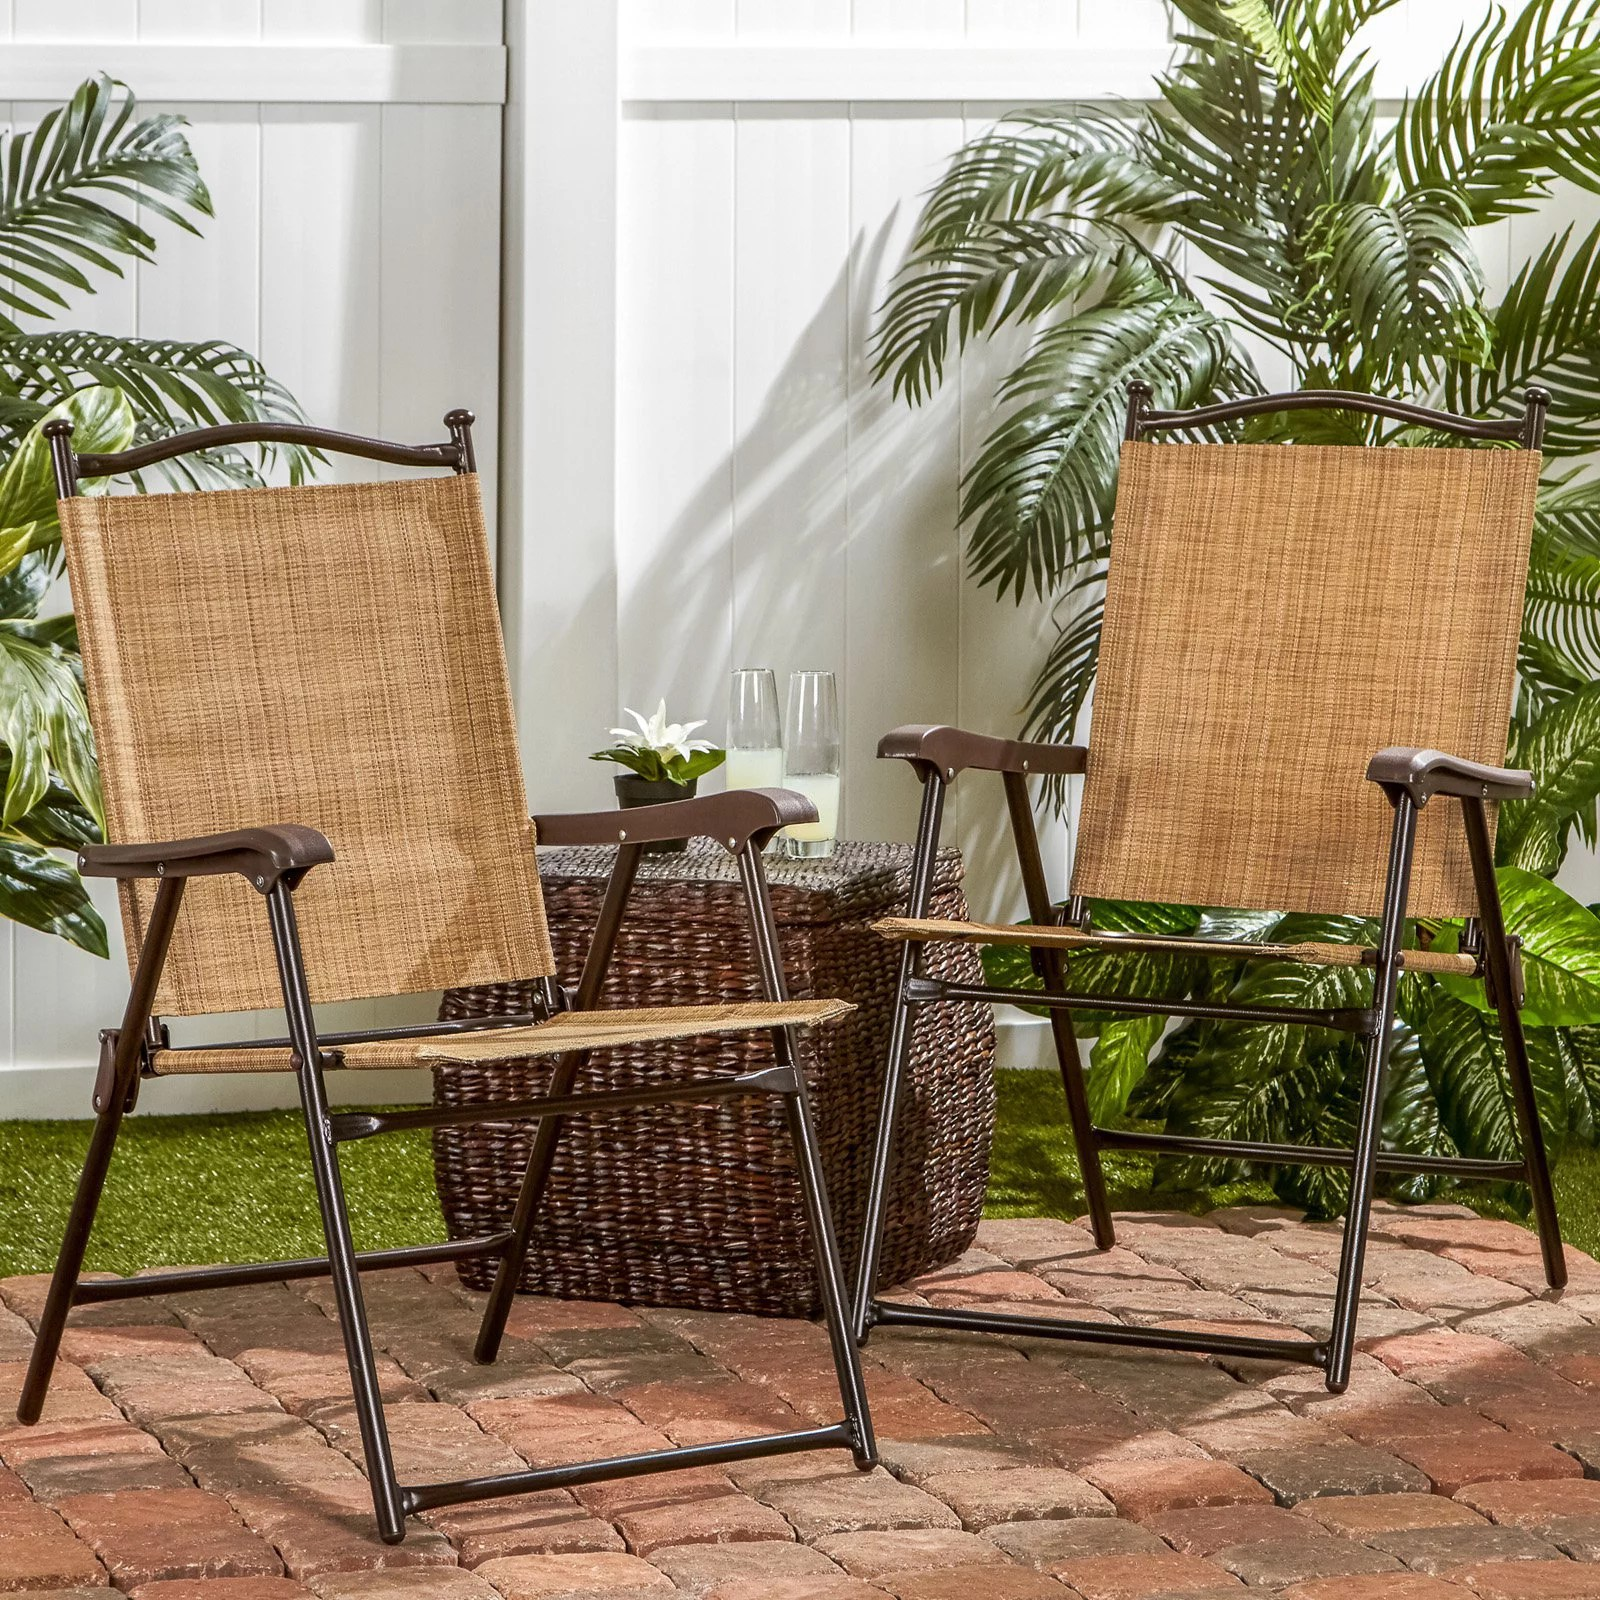 sling black outdoor chairs bamboo set of 2 walmart com